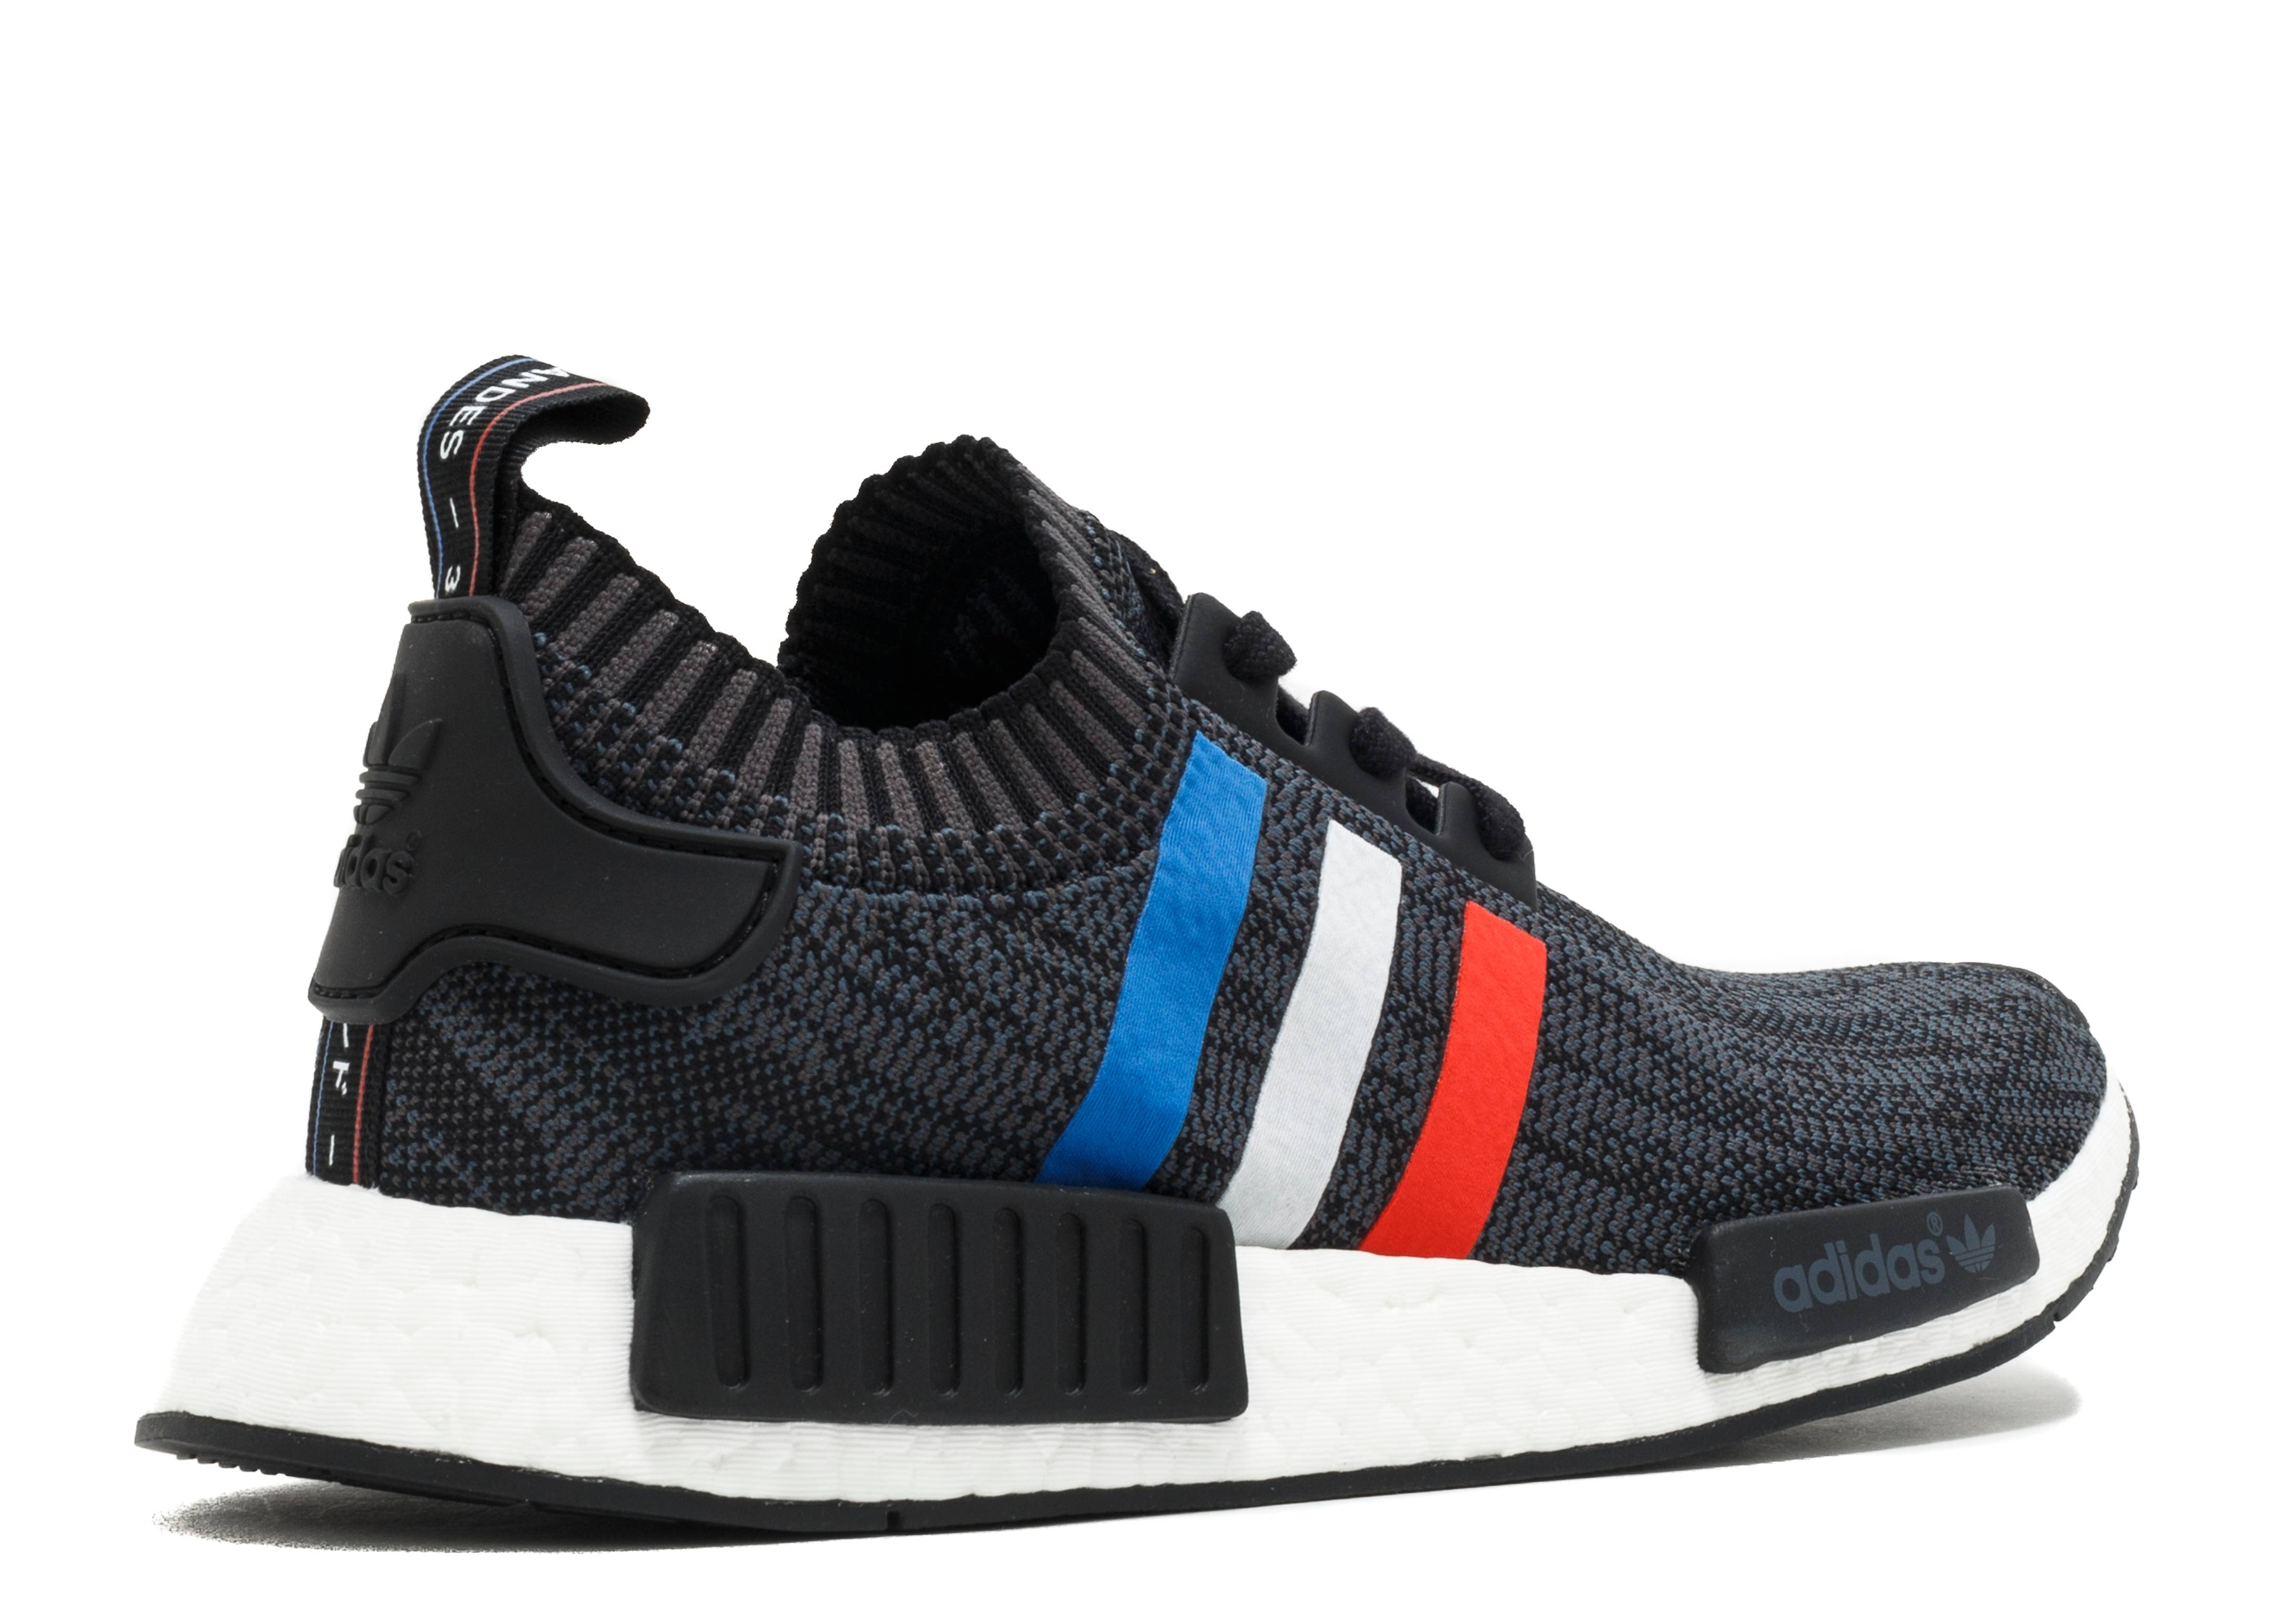 nmd r1 pk tri color cblack cred ftwhite nmd adidas. Black Bedroom Furniture Sets. Home Design Ideas